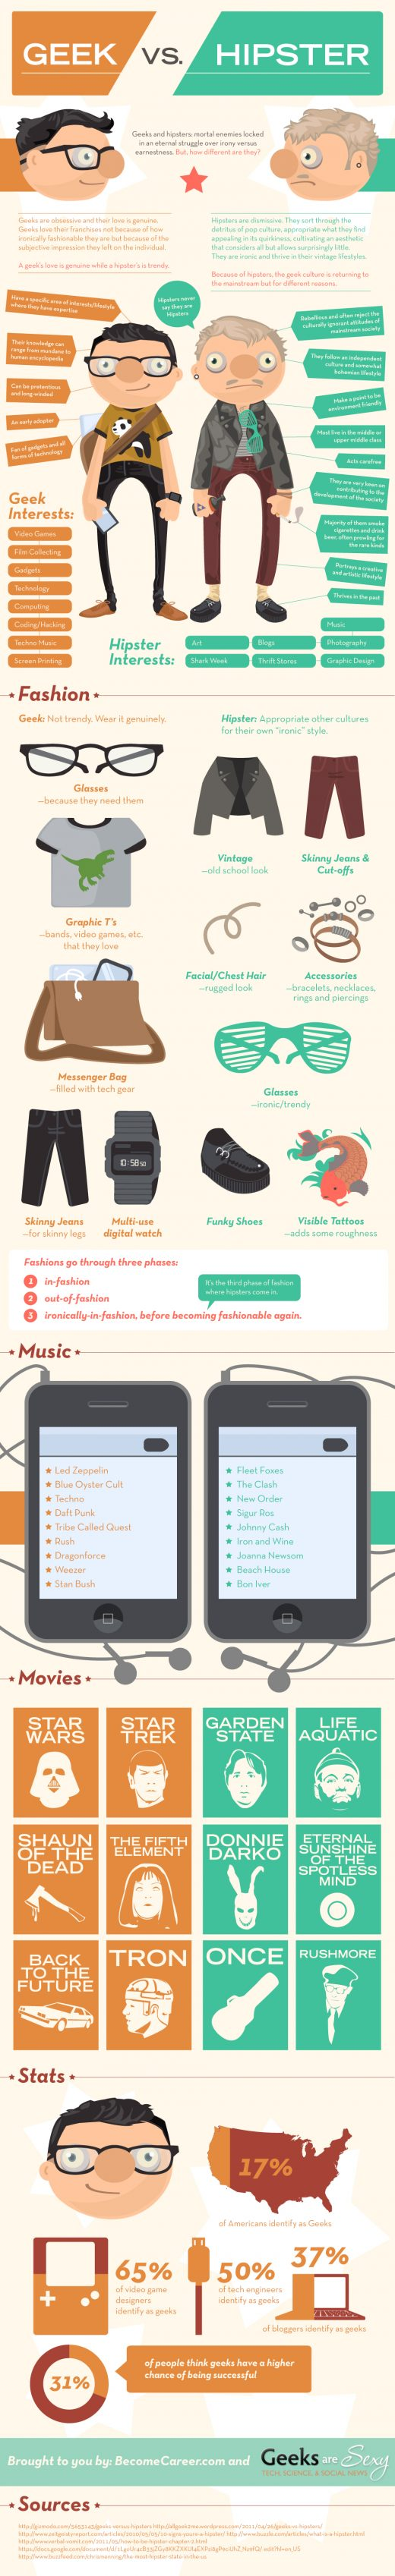 geek-vs-hipster-infographic